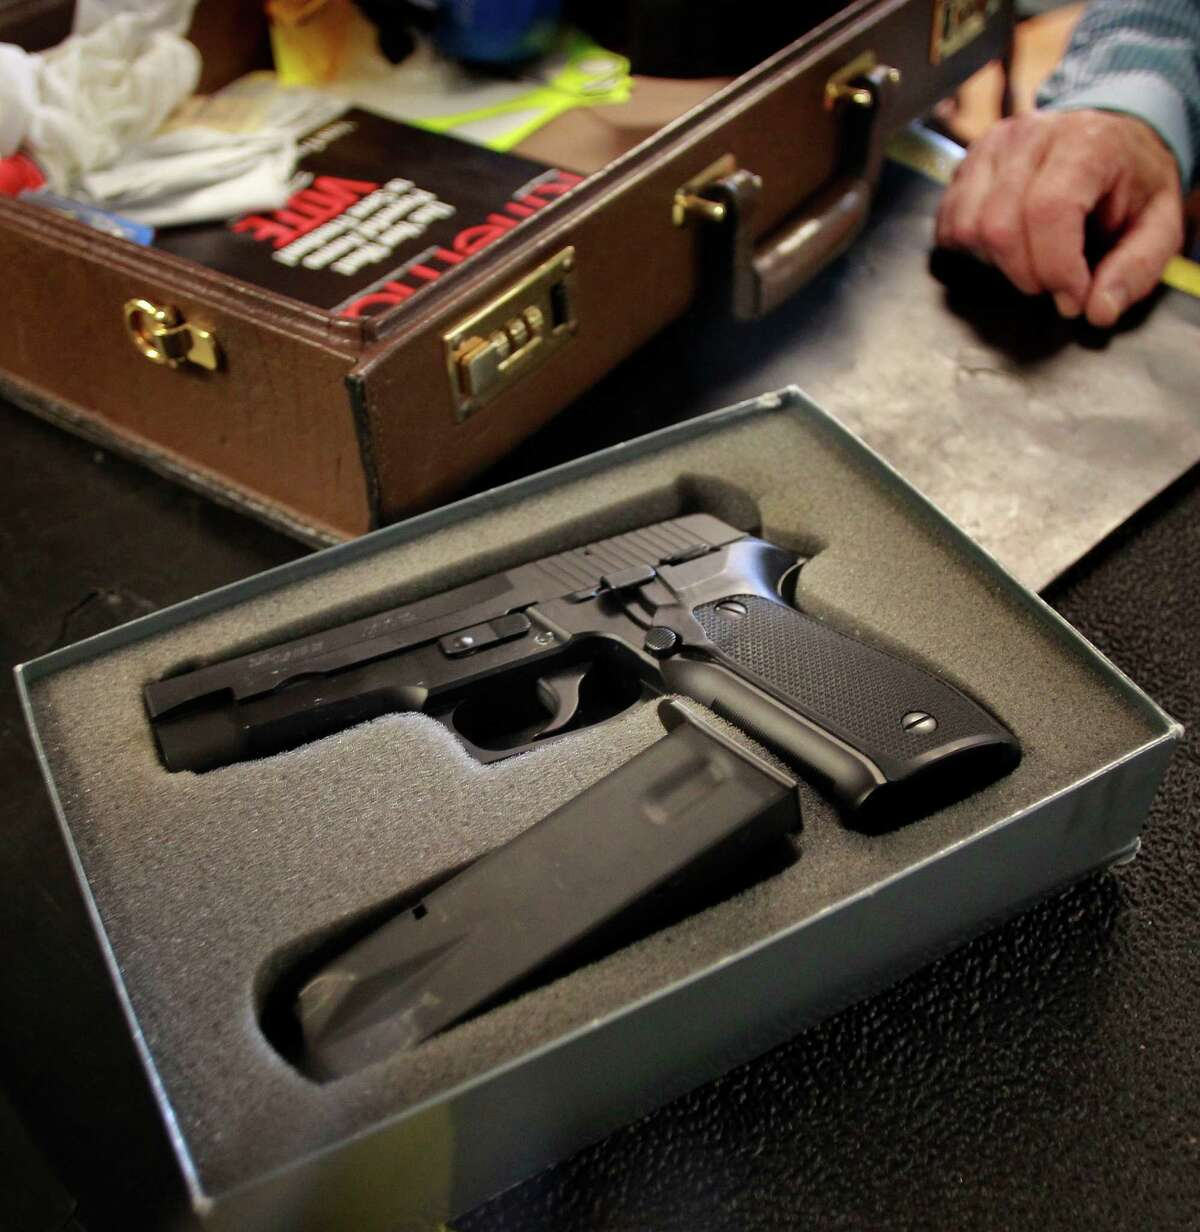 Gun owner Jeff Levinger shows how his weapon must be legally transported: unloaded and locked in a case, and carried separate from the ammunition, as he arrives at the Jackson Arms shooting range in South San Francisco.